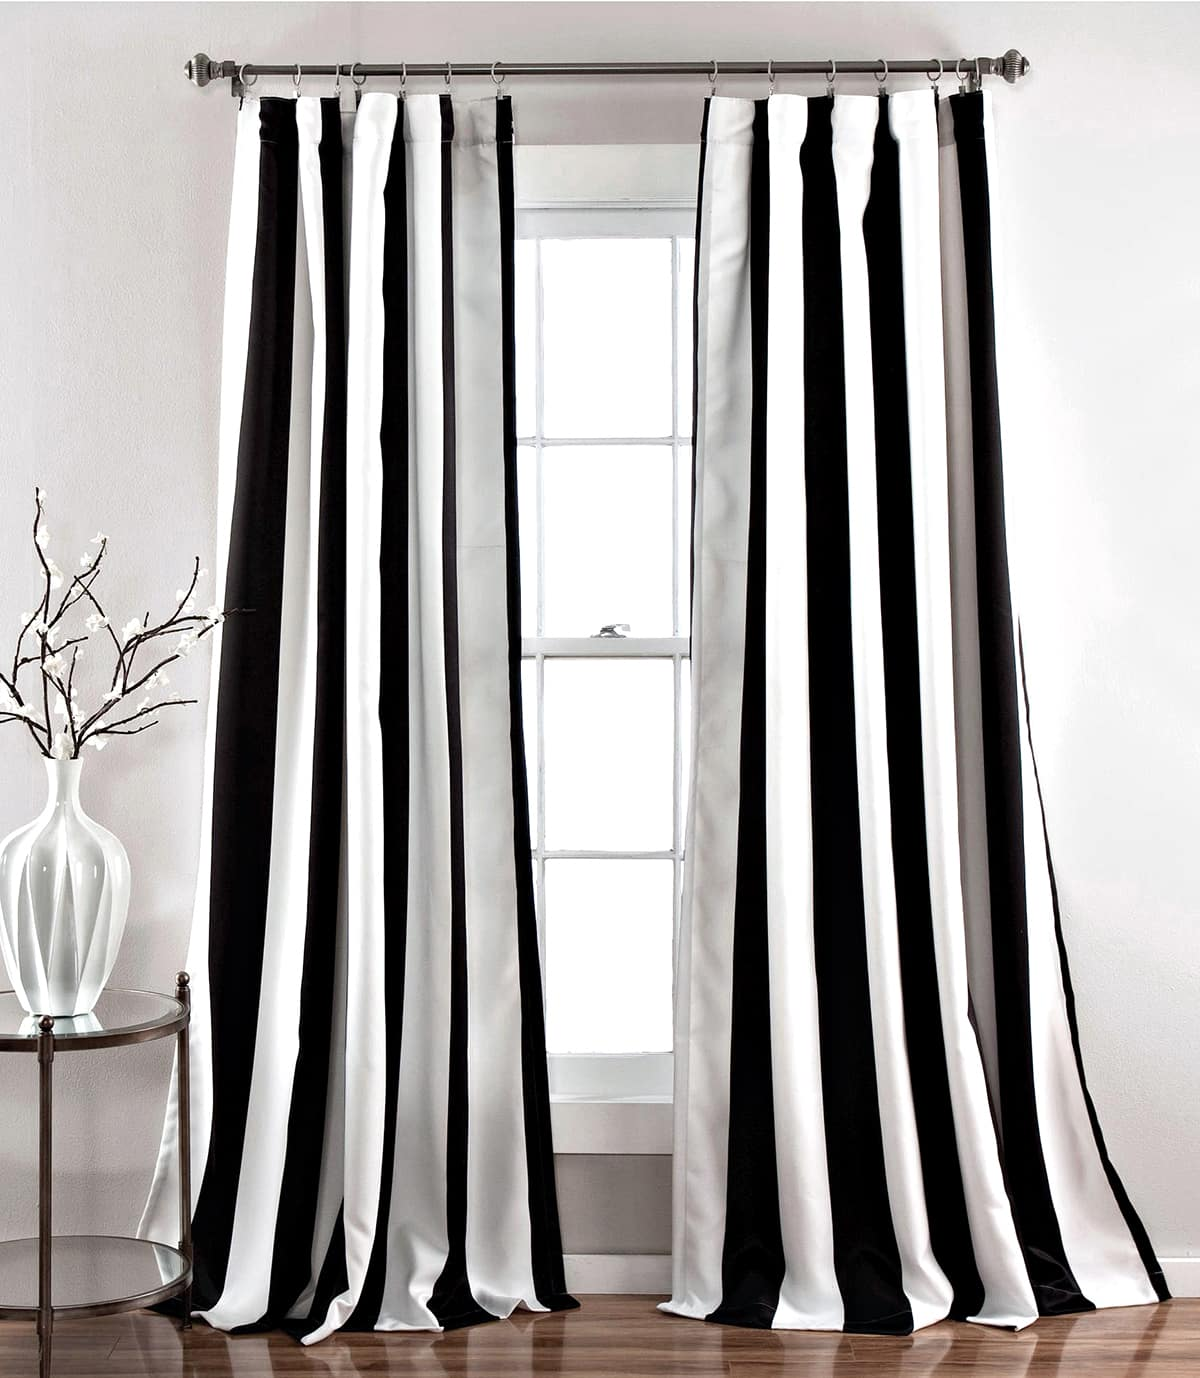 black and white striped curtains